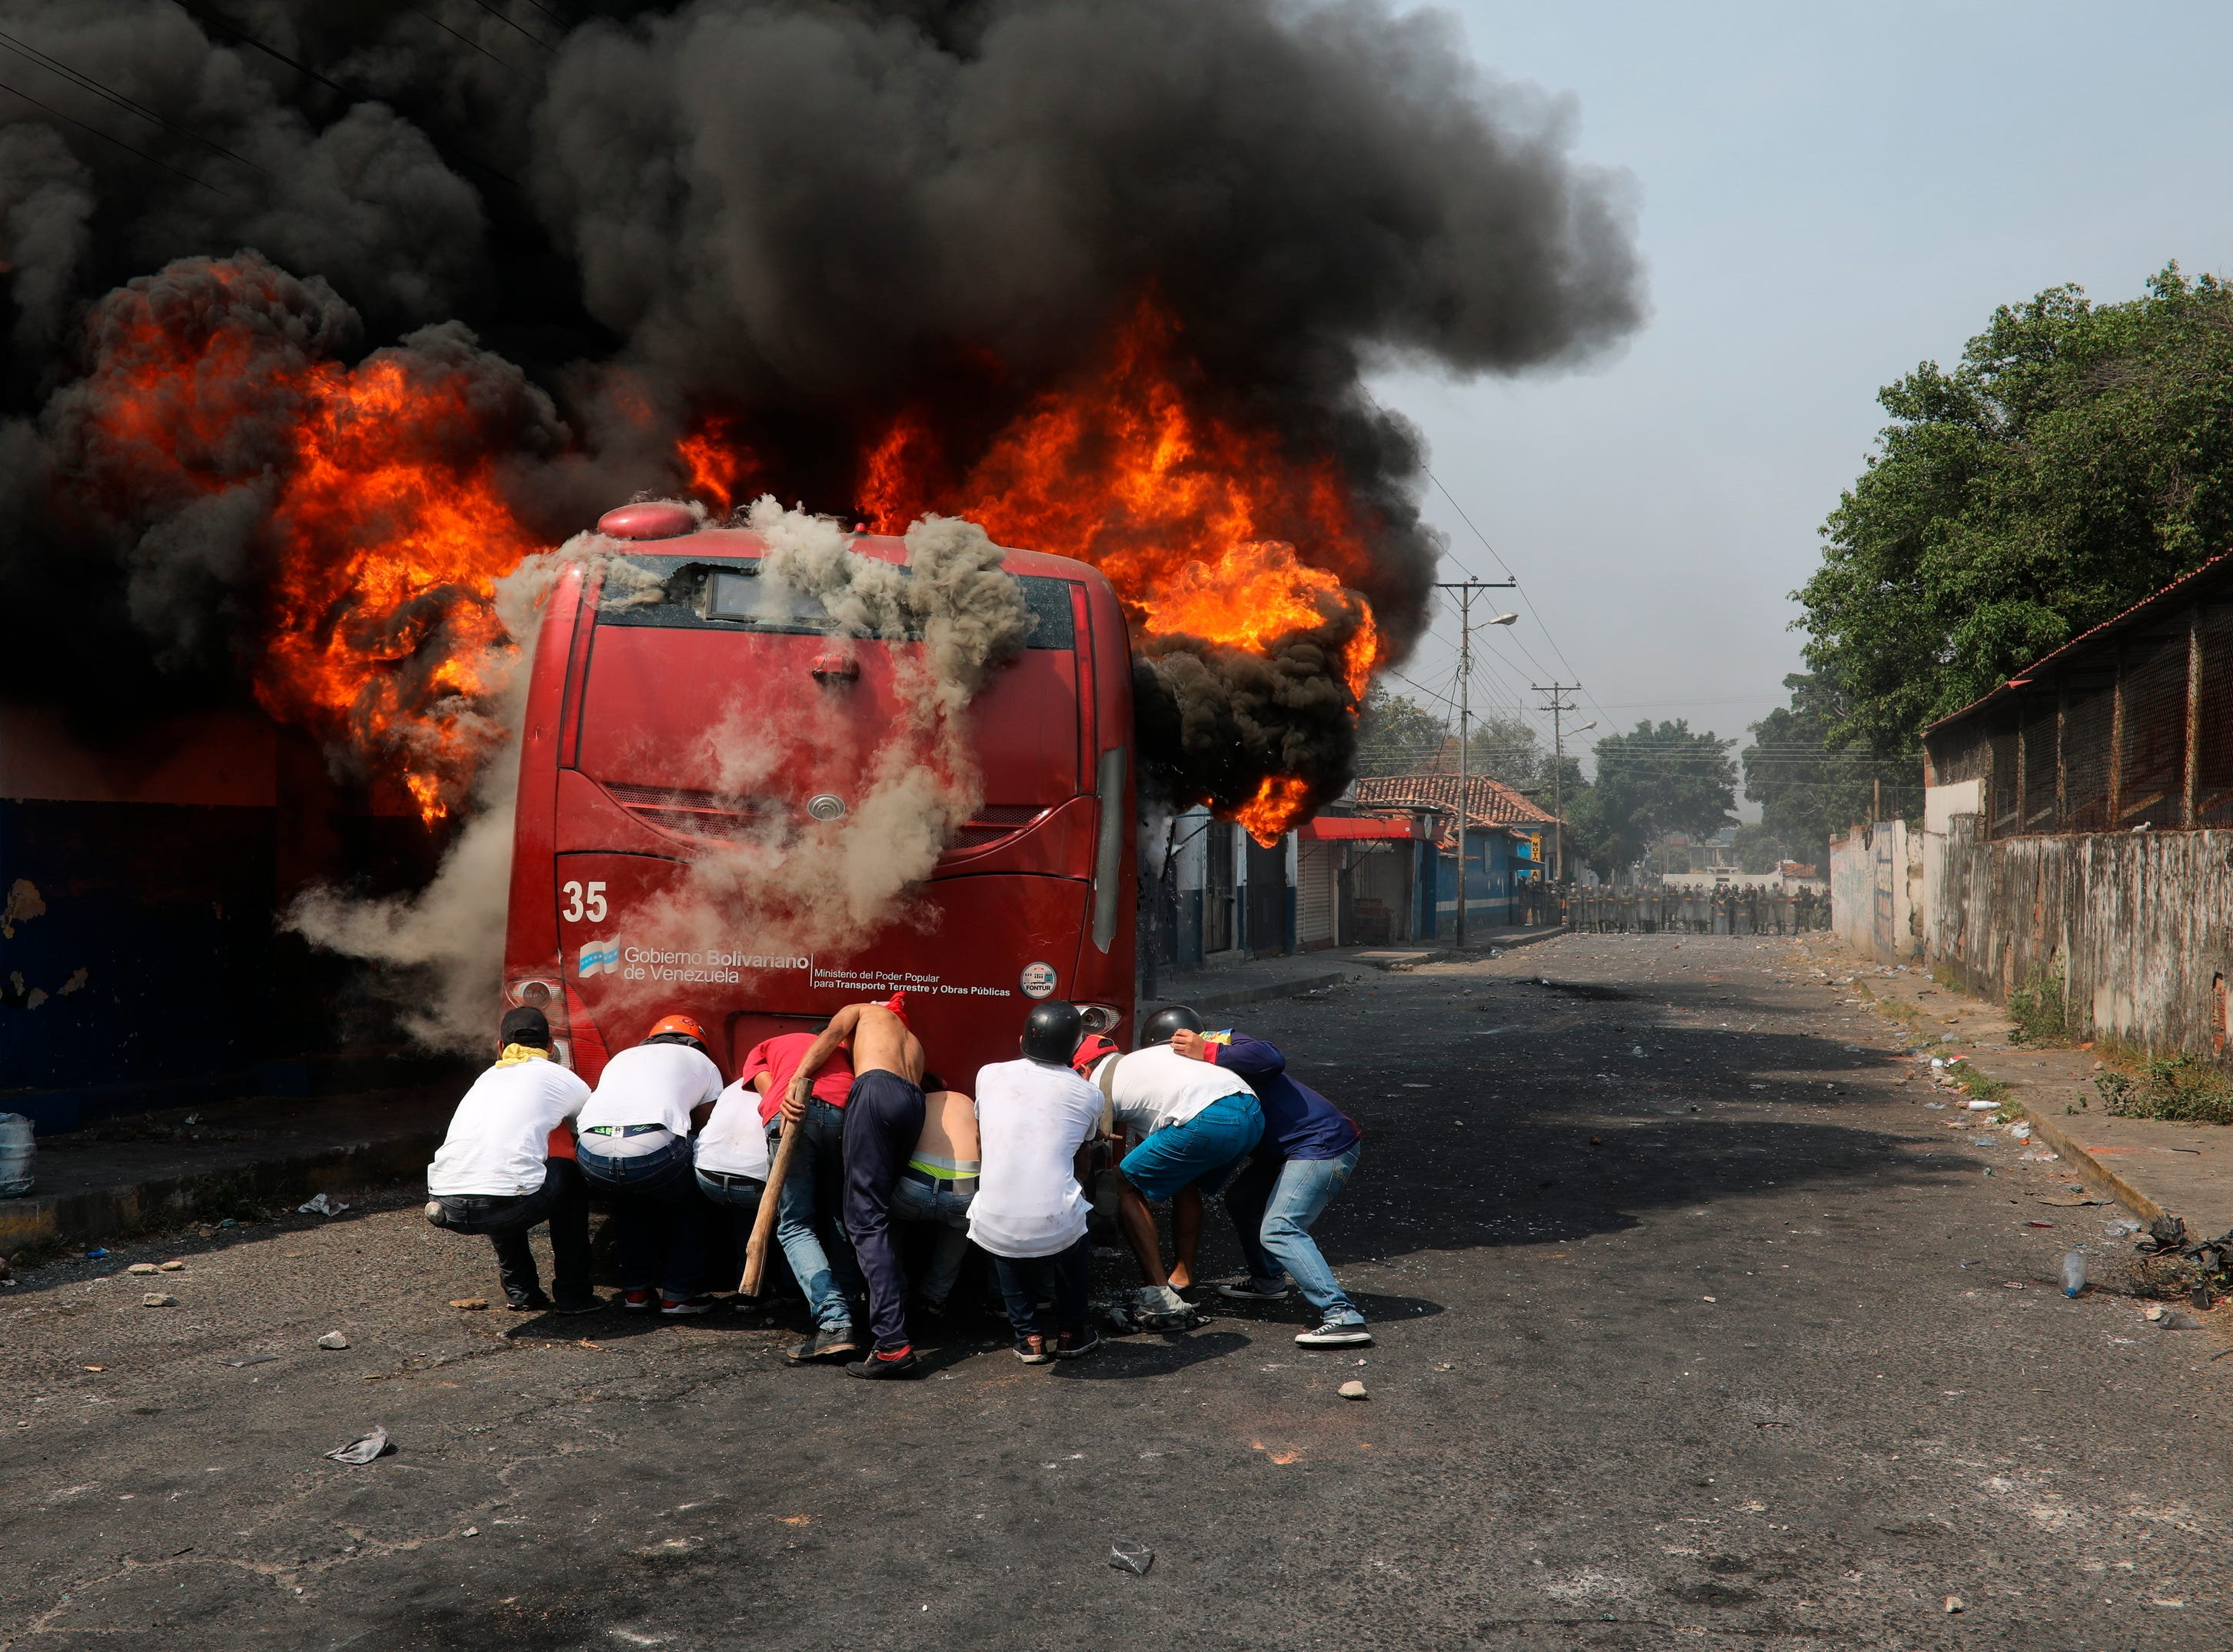 Demonstrators push a bus that was set on fire during clashes with the Bolivarian National Guard in Urena, Venezuela, near the border with Colombia, Saturday, Feb. 23, 2019.